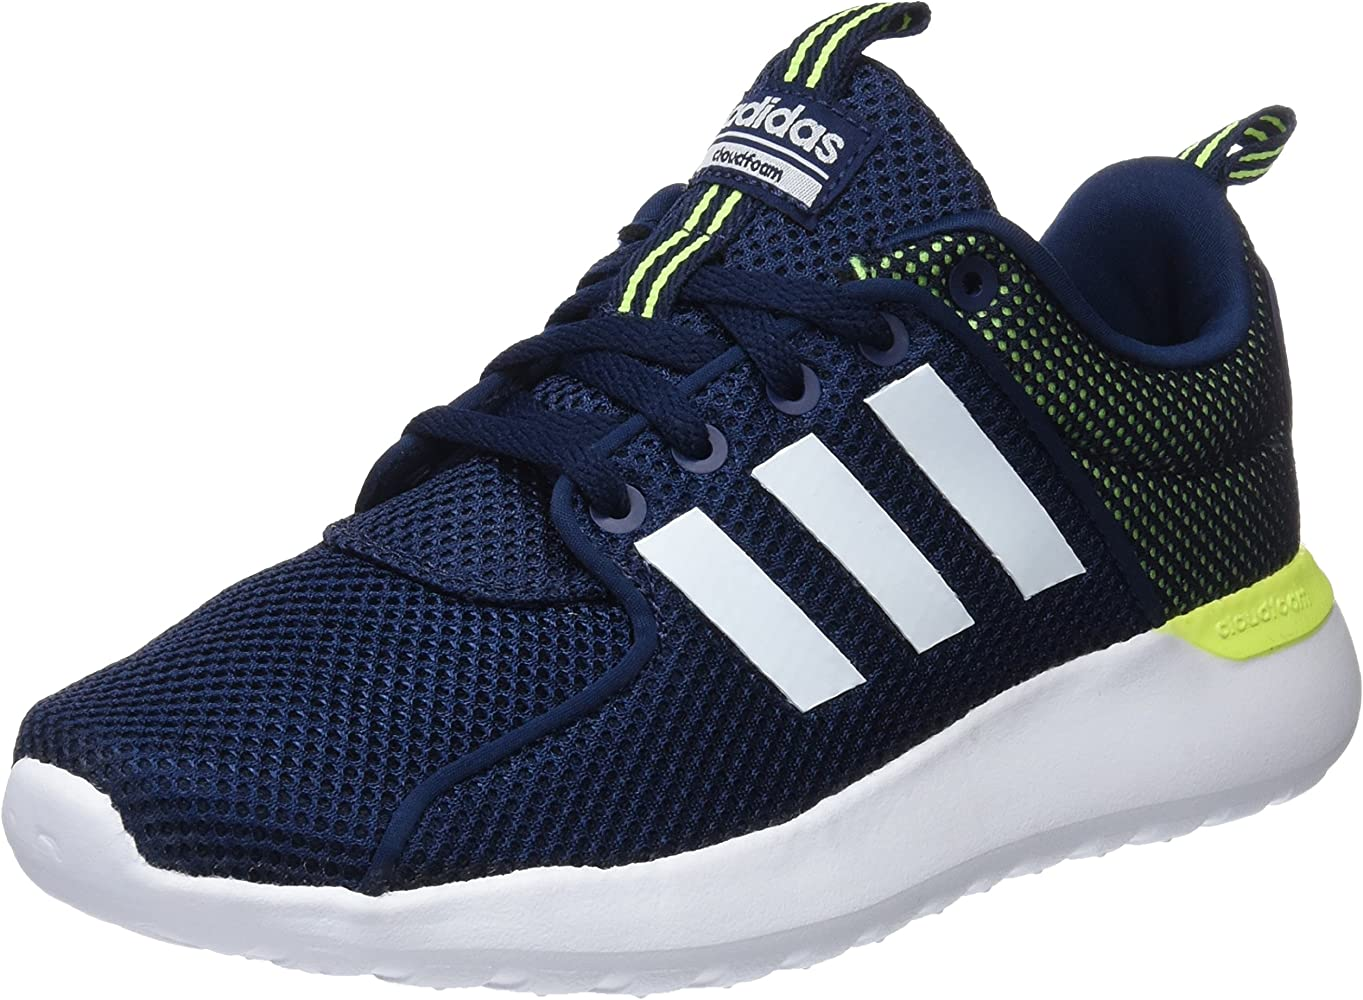 adidas lite racer clean mens trainers